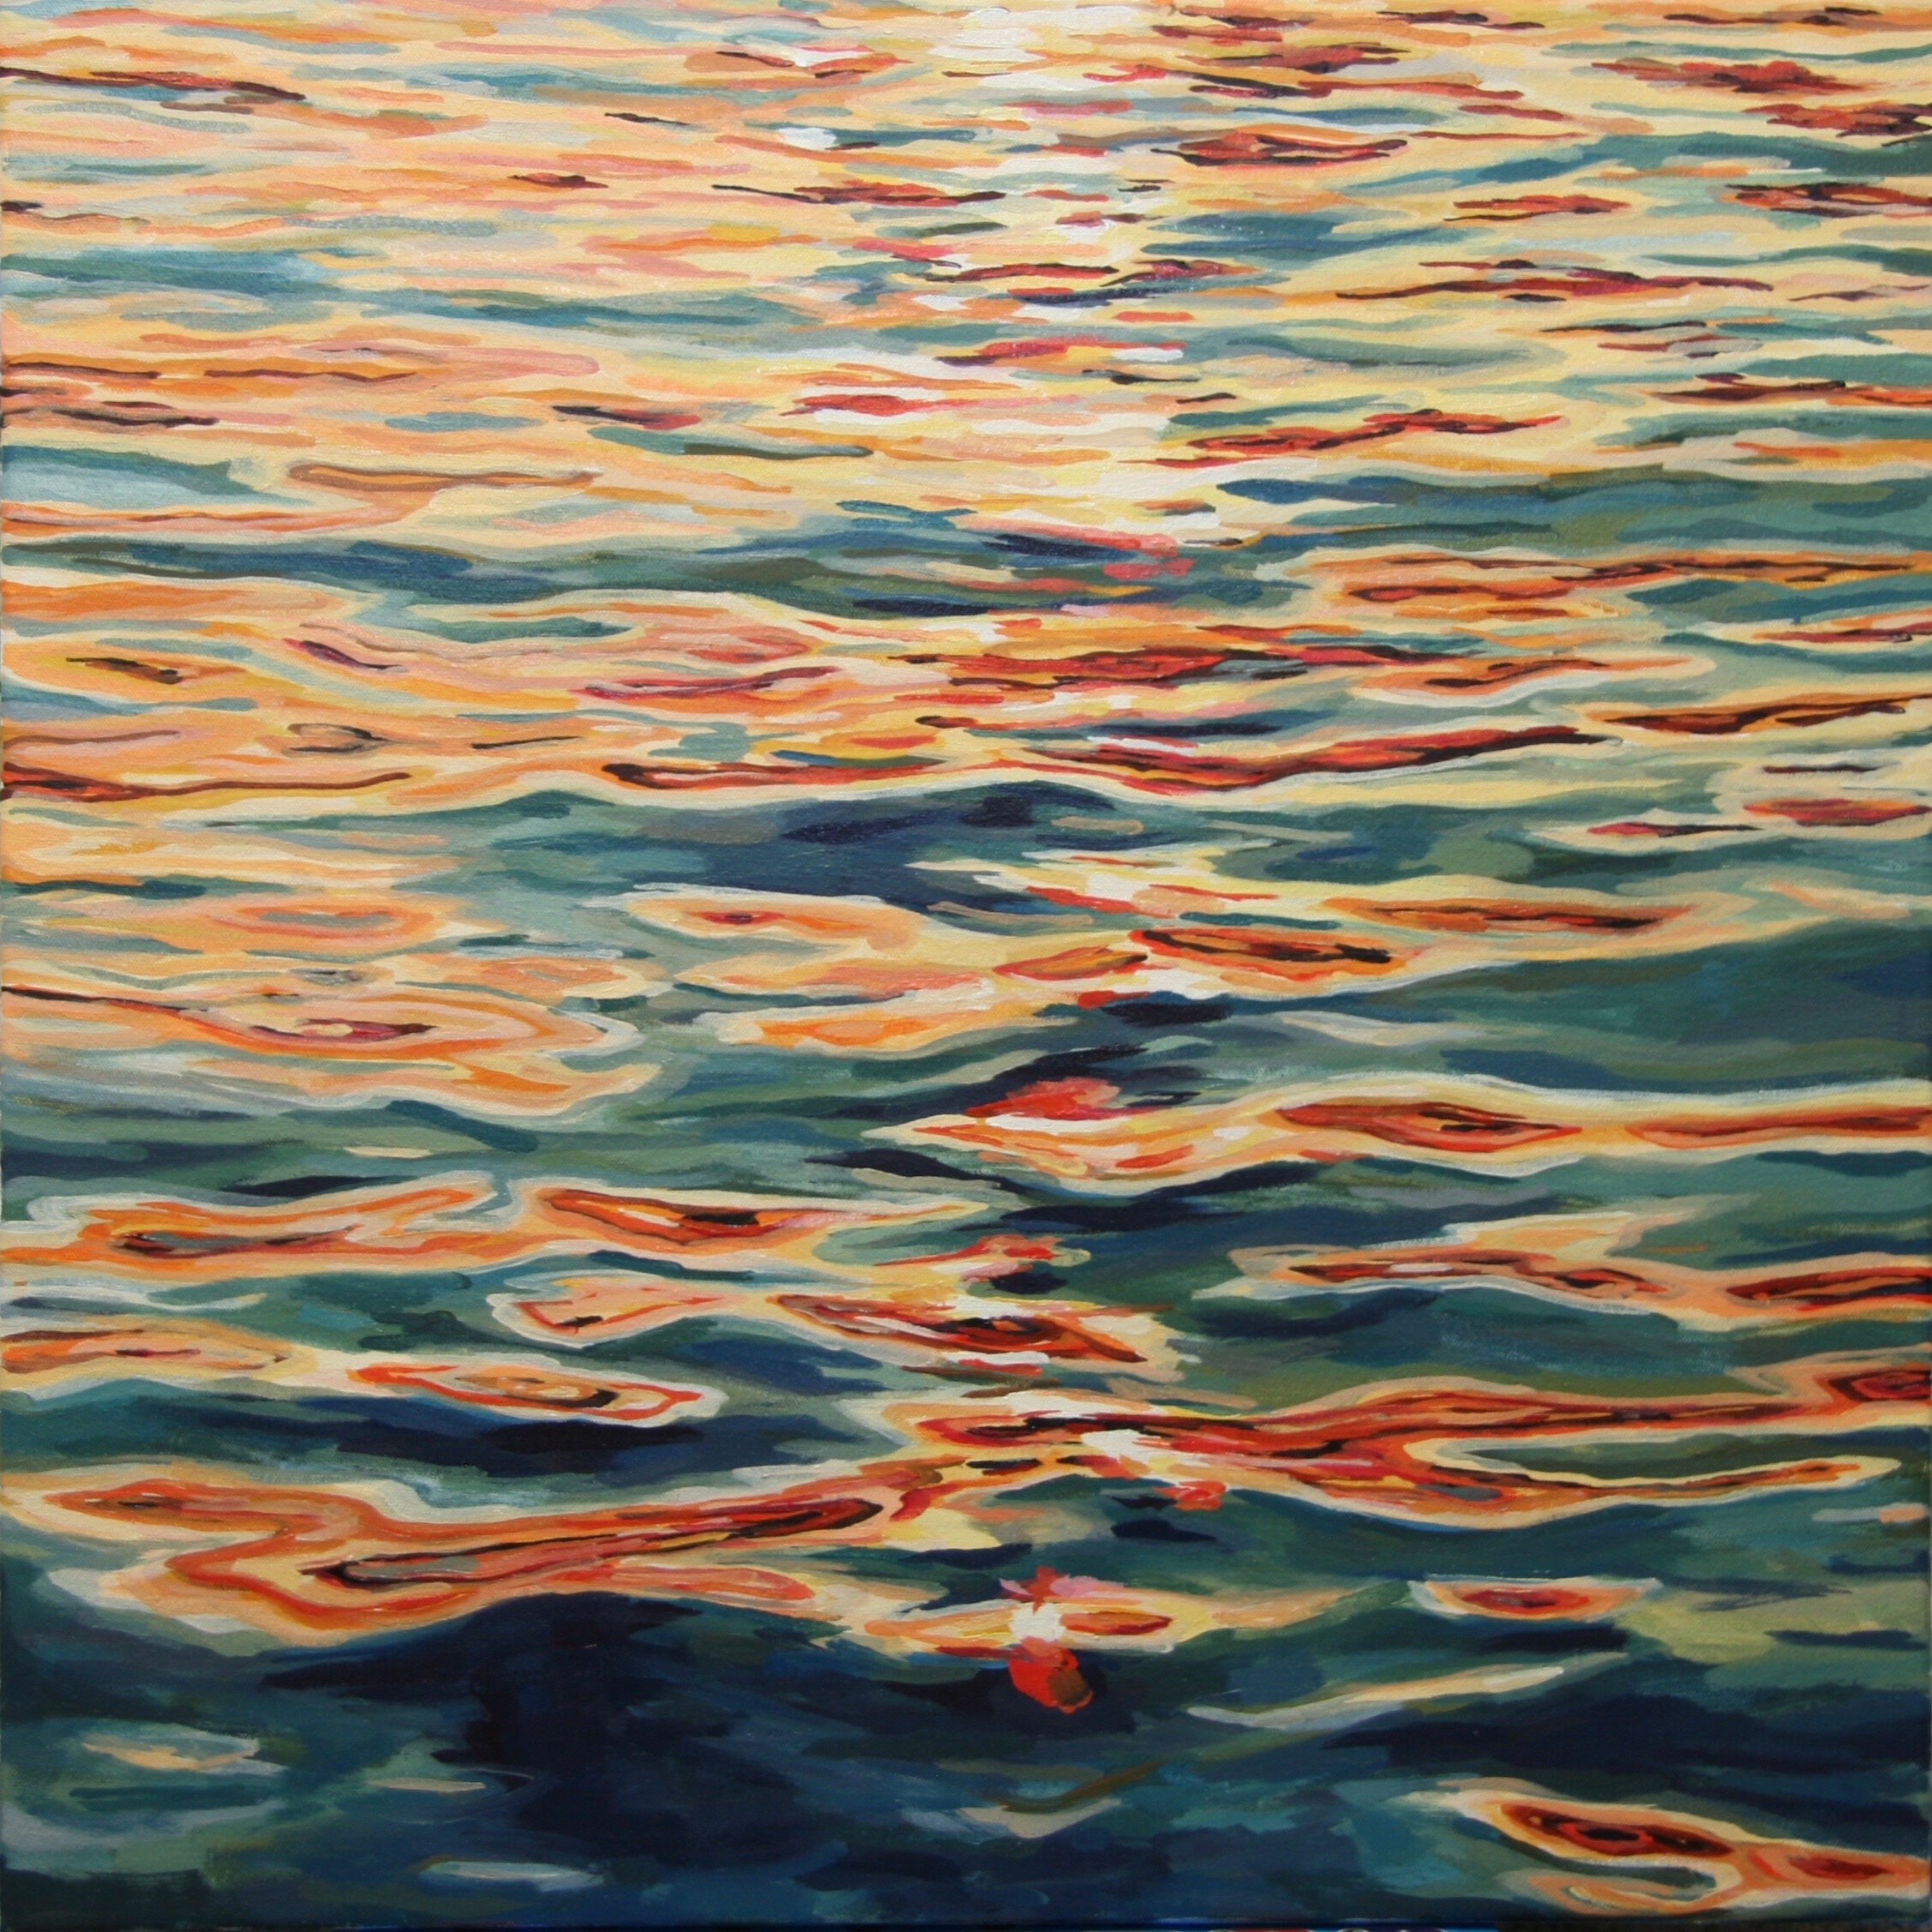 """'Gleam II'  2015  24"""" x 24""""  water soluble oil on canvas  sold"""